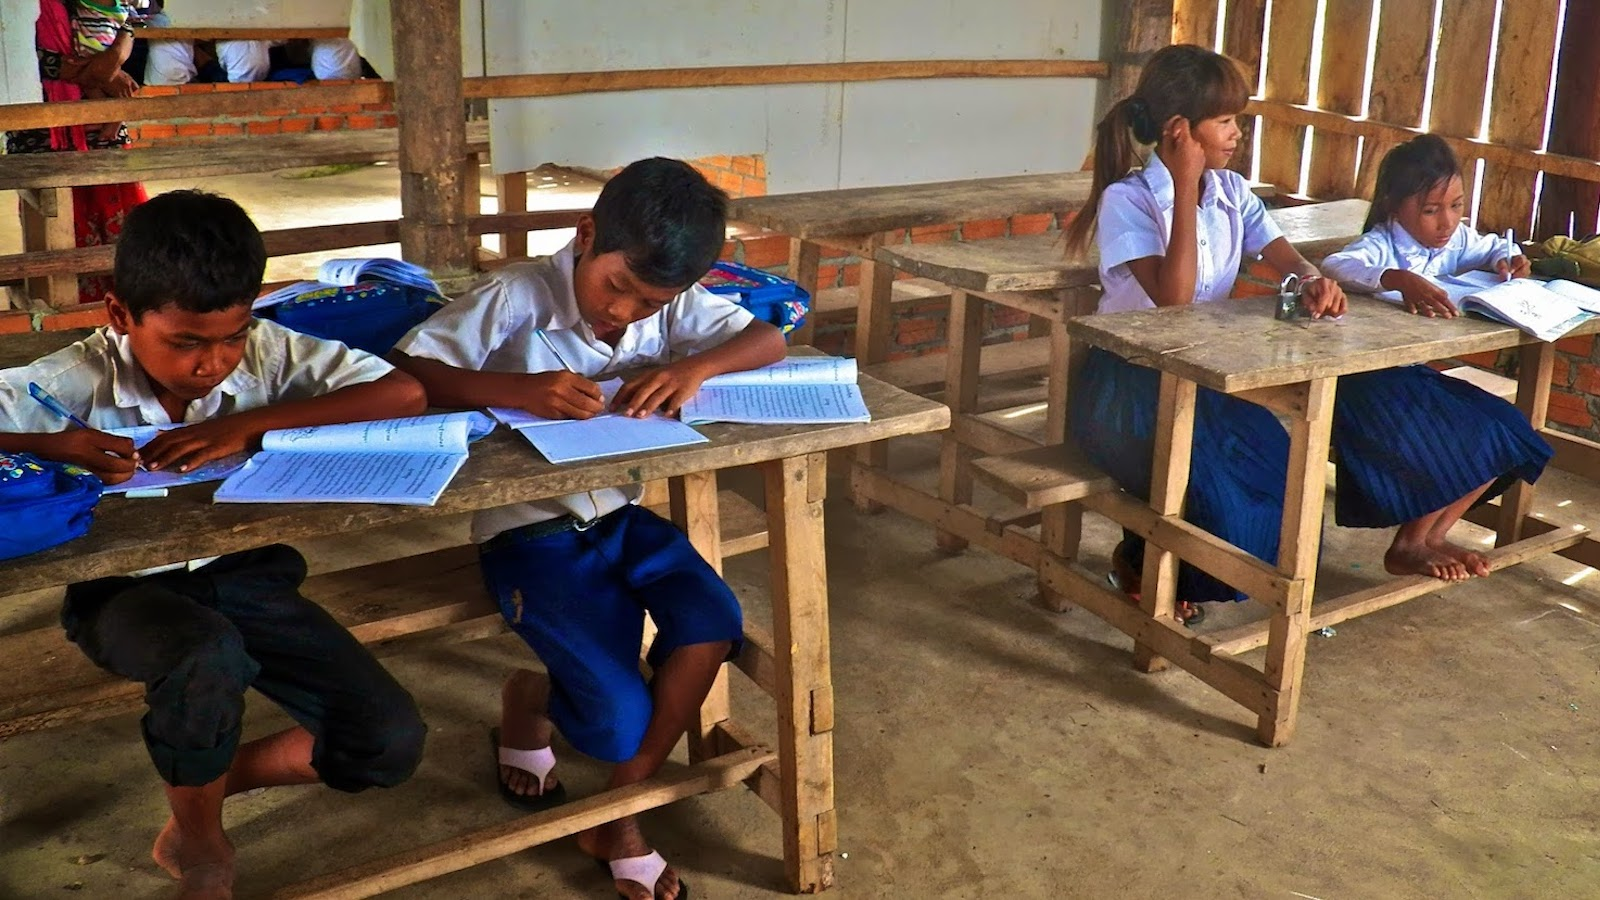 Students working at desks in Cambodia